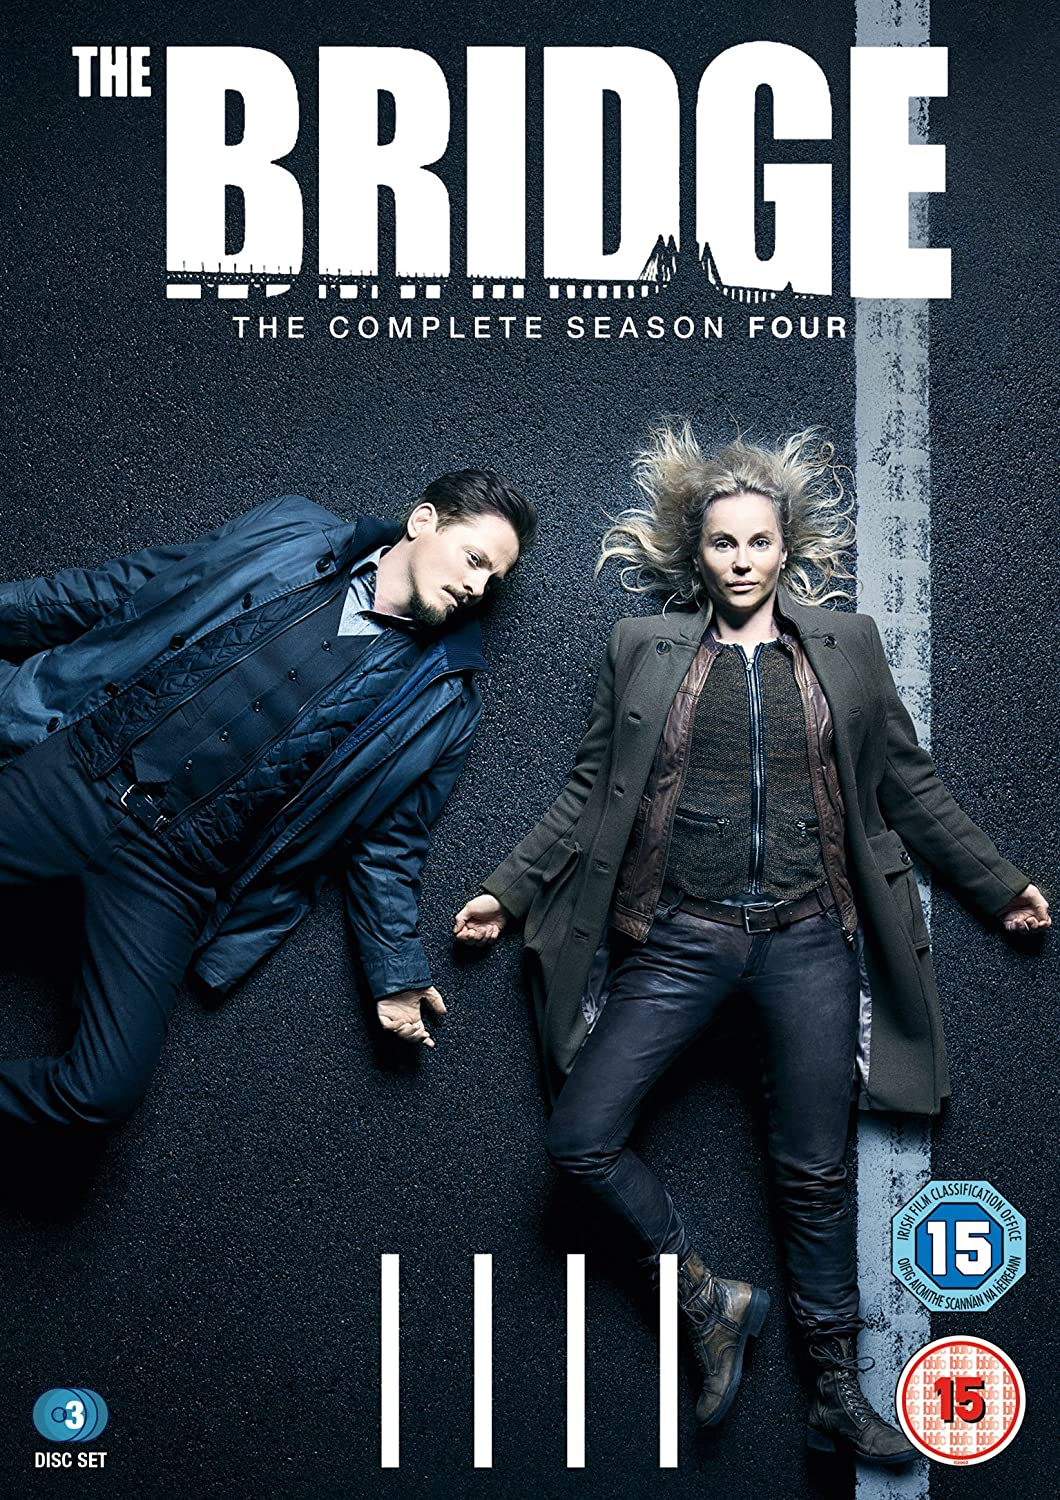 The Bridge: Season 4